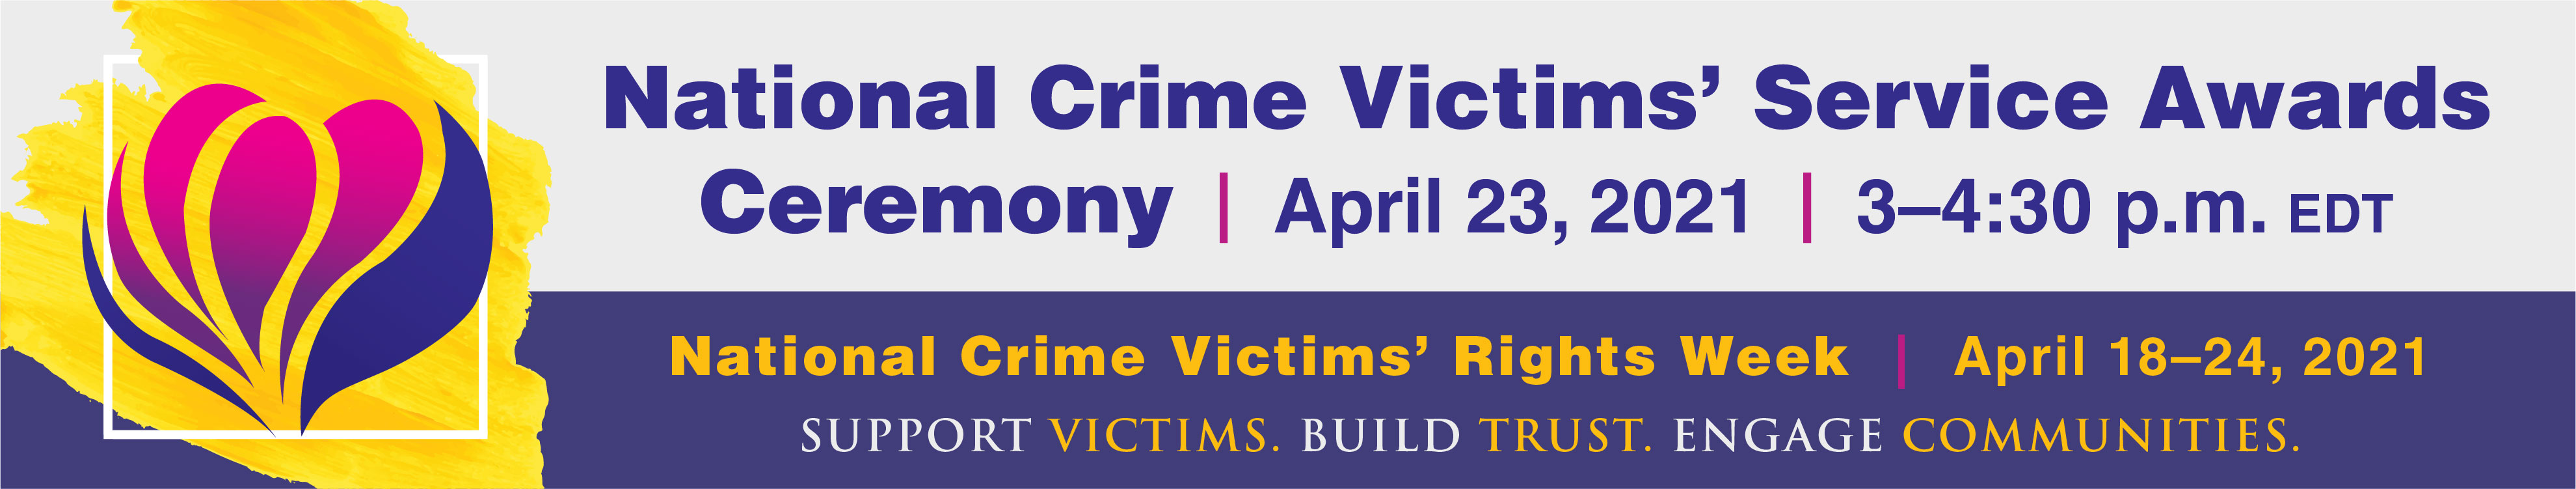 National Crime Victims' Service Awards Ceremony